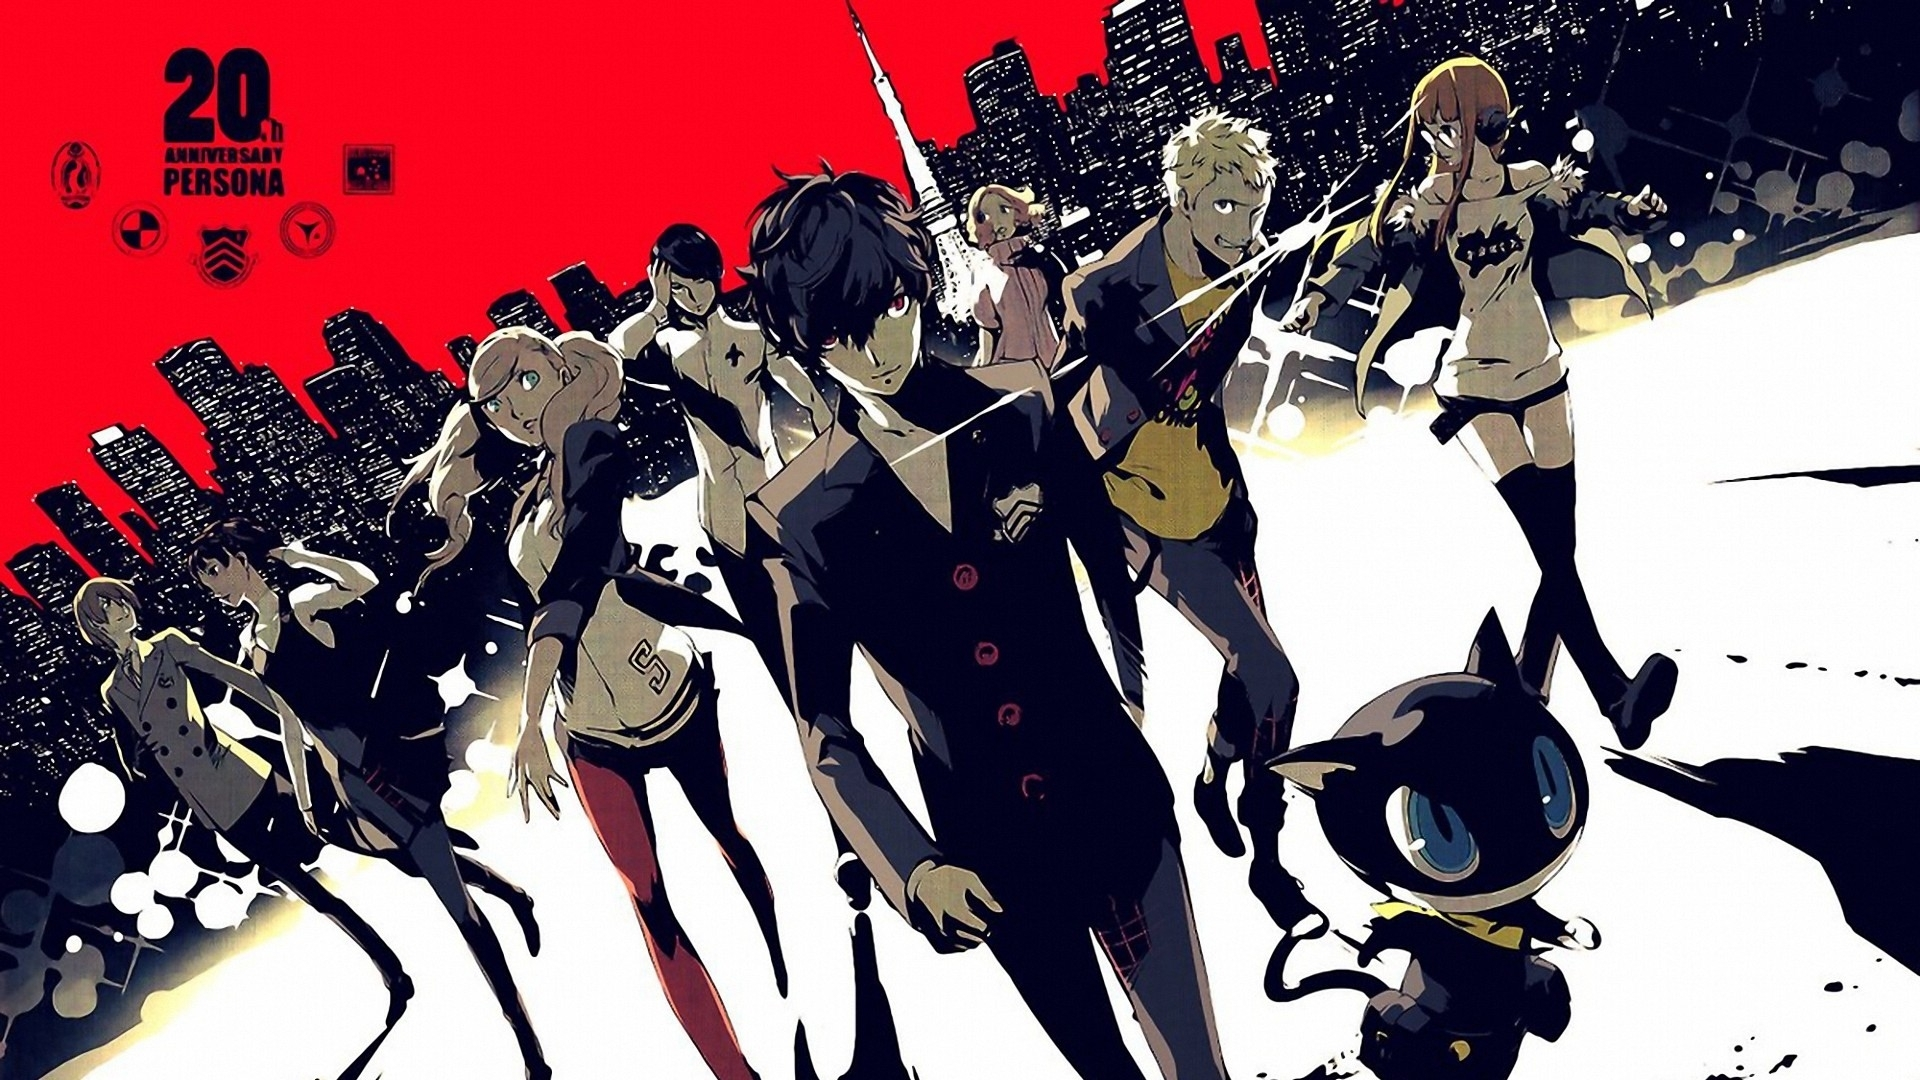 Title Persona 5 Wallpaper Hd 81 Images Dimension 1920 X 1080 File Type JPG JPEG